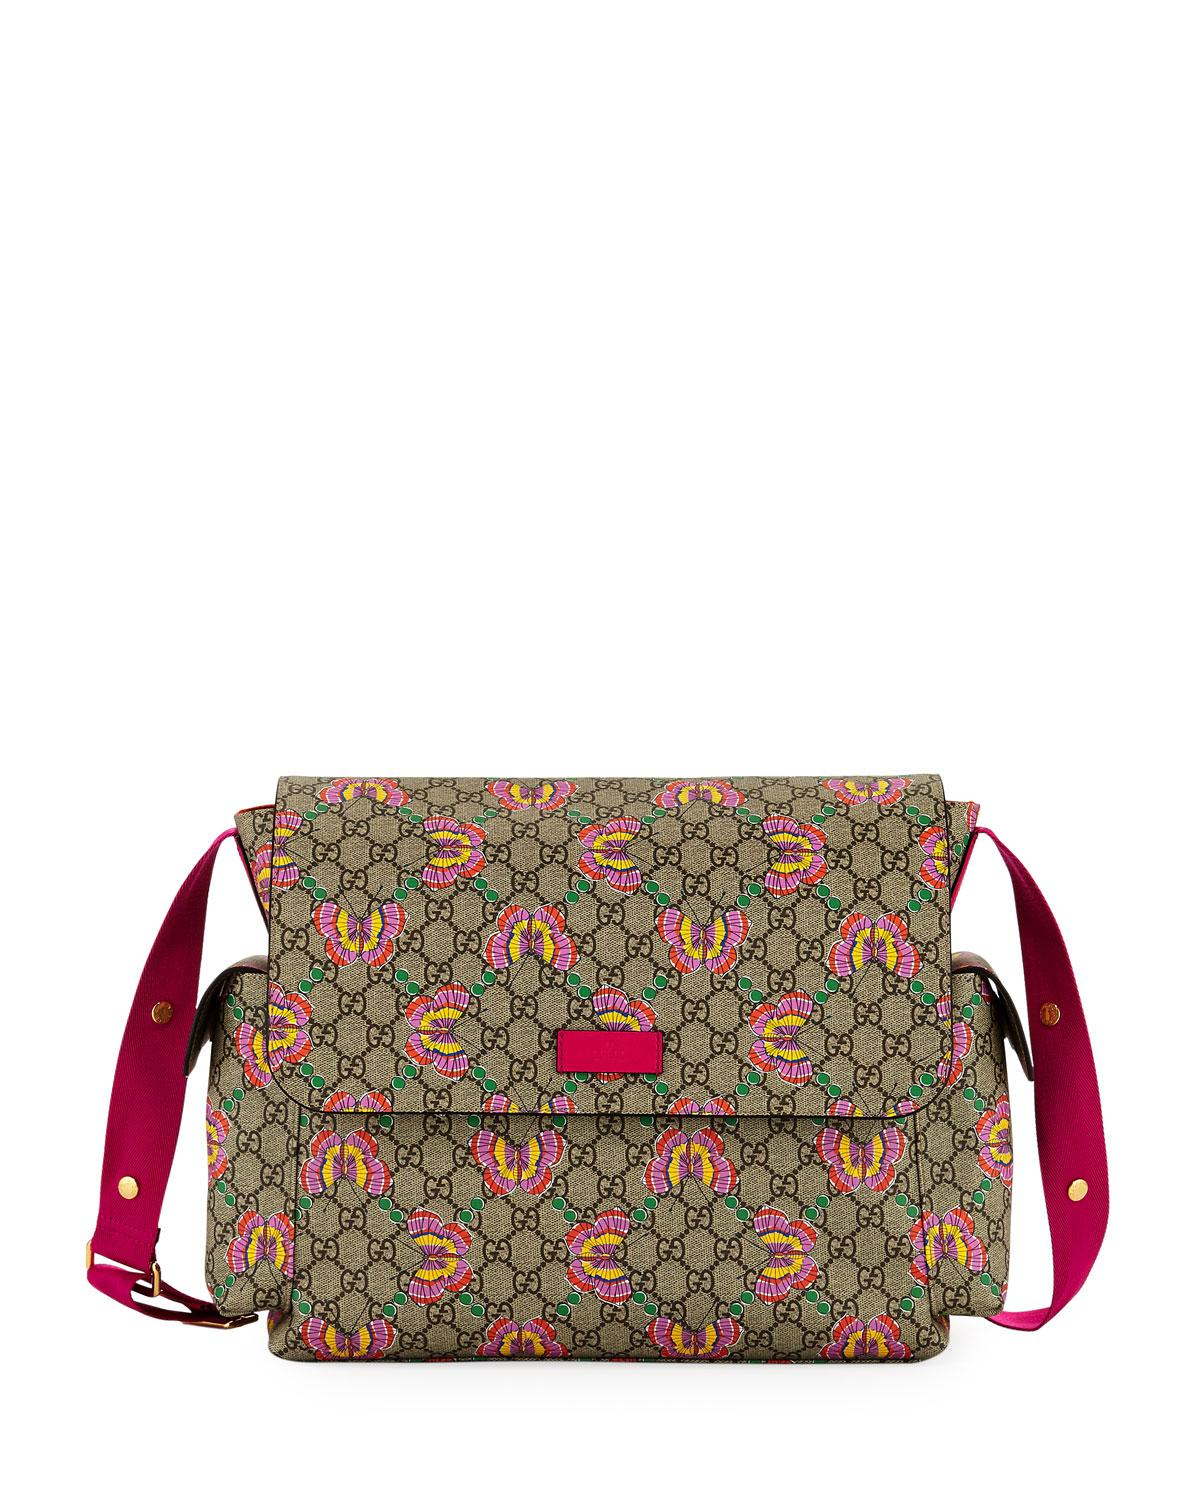 2b0fc1996e8fb1 Gucci Gg Supreme Canvas Butterfly Diaper Bag W/ Changing Pad in ...